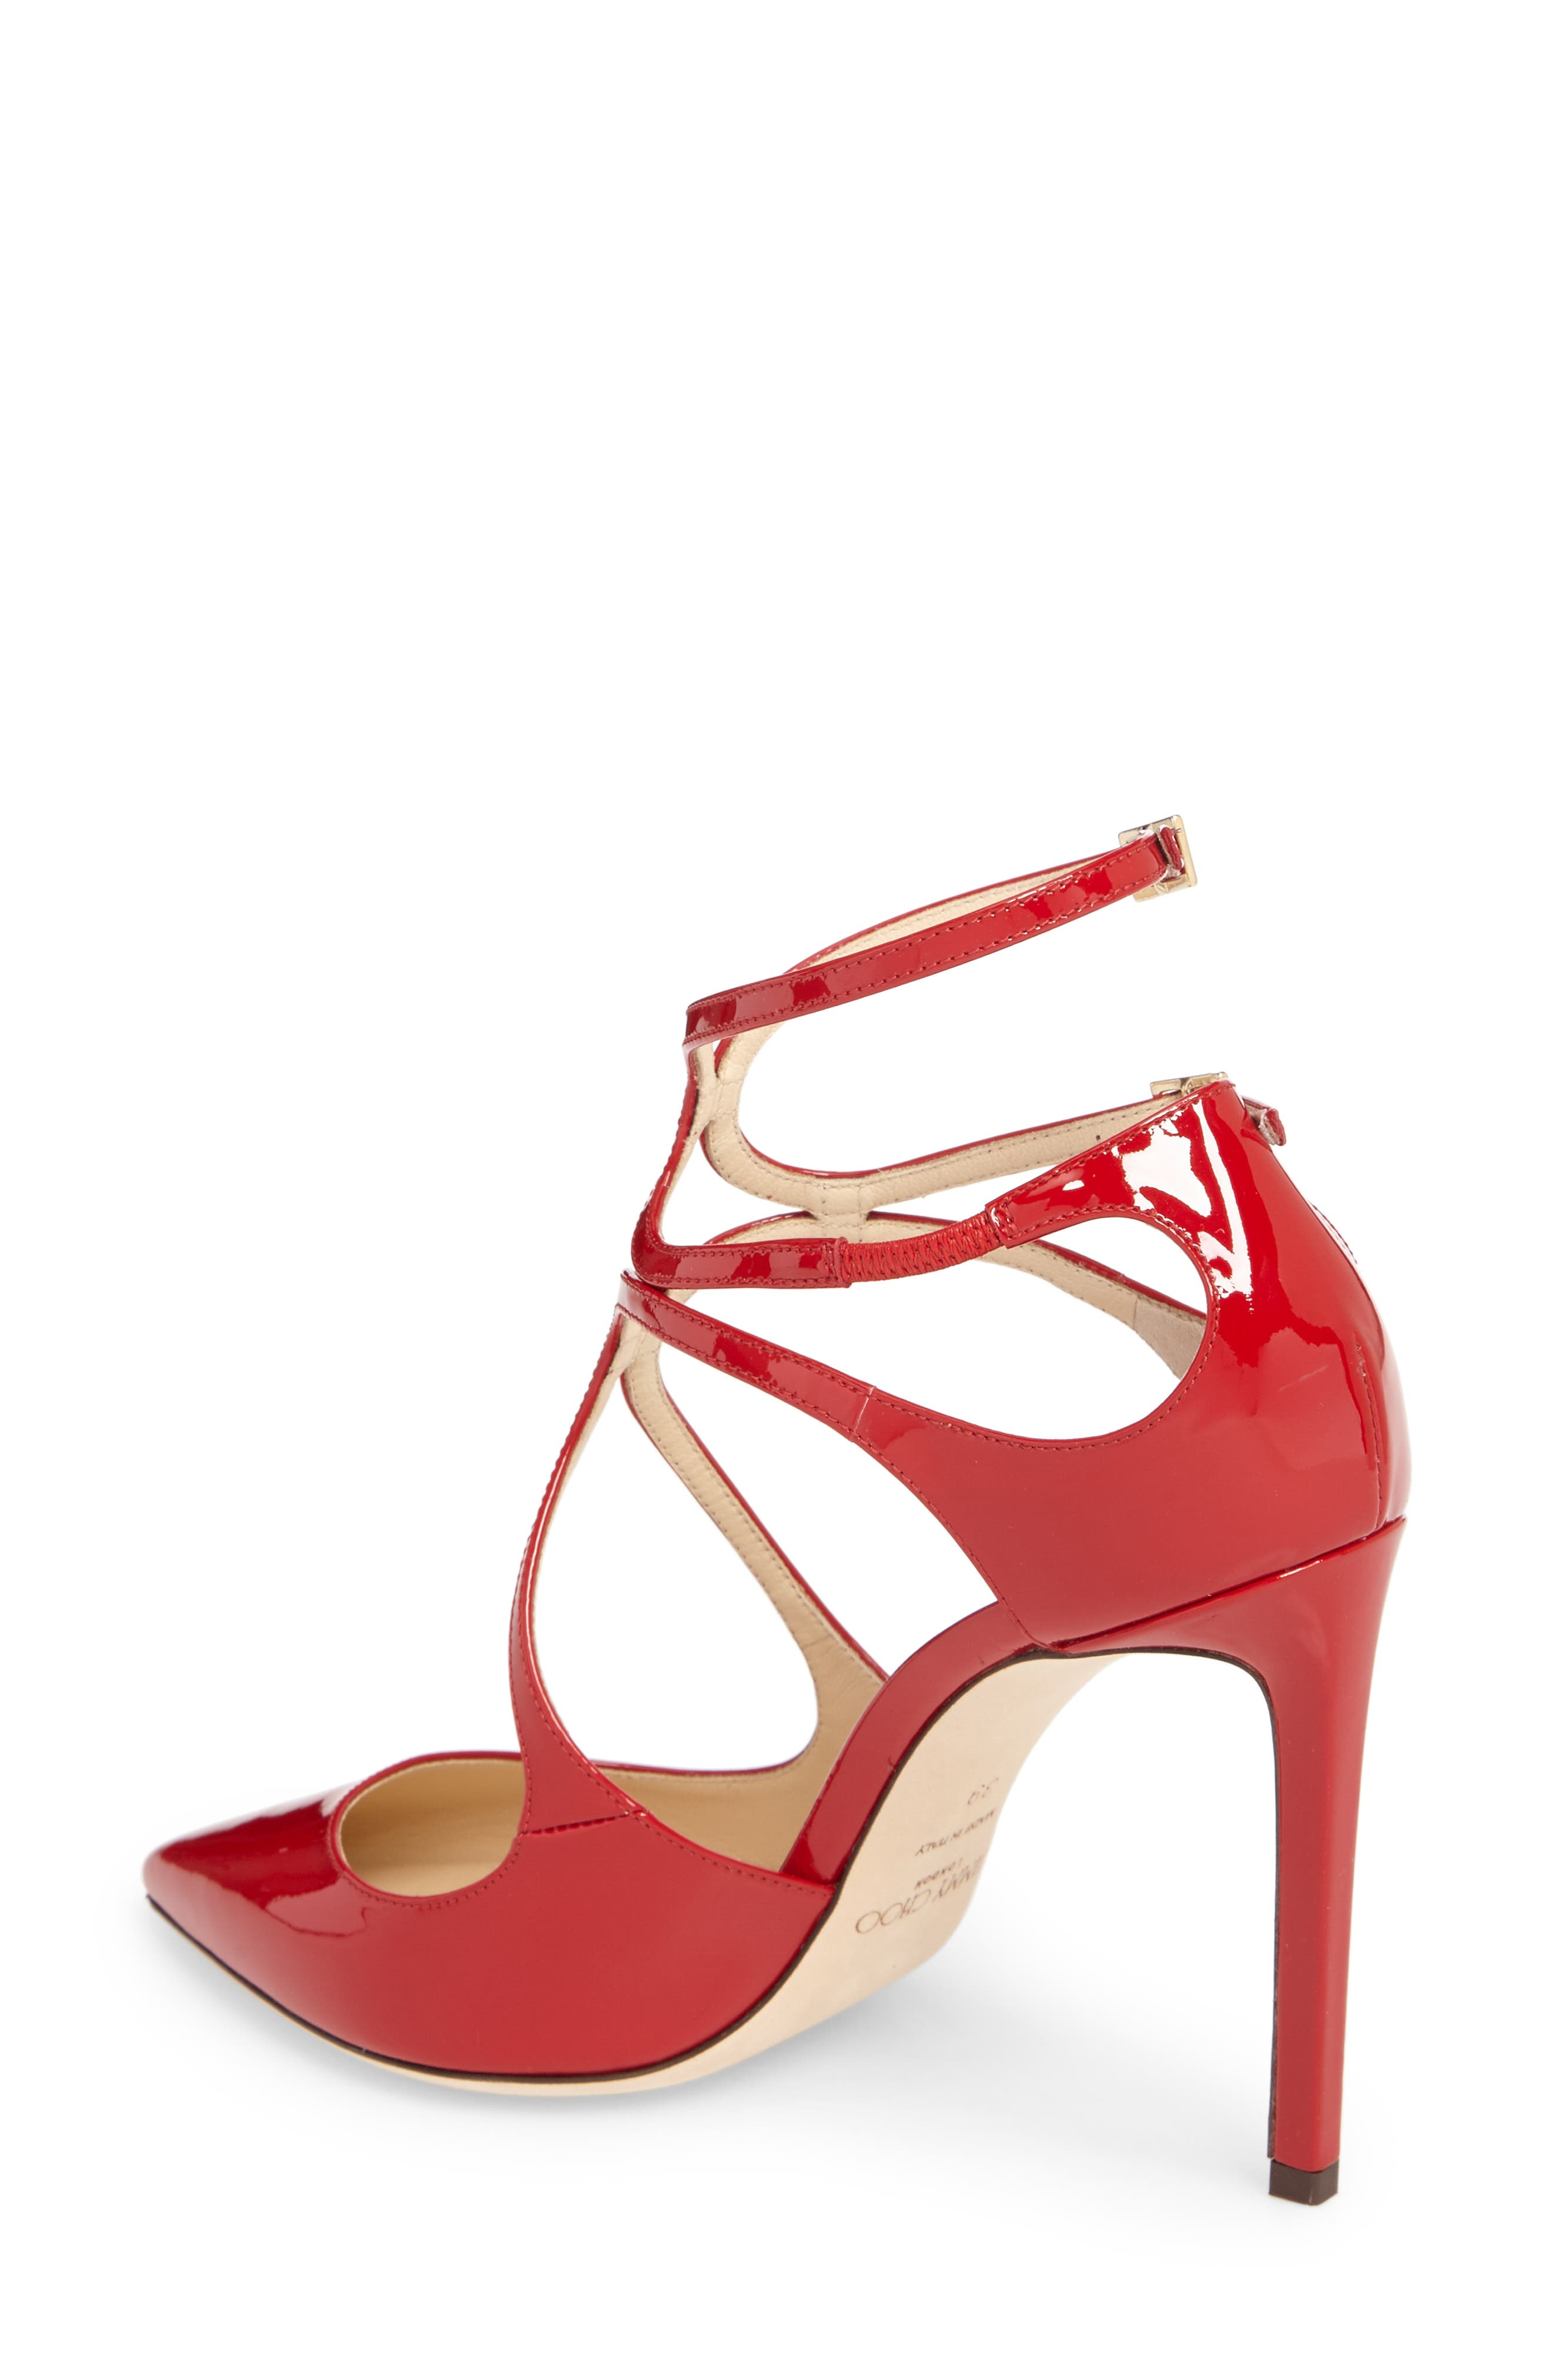 Lancer Strappy Pump,                             Alternate thumbnail 2, color,                             Red Patent